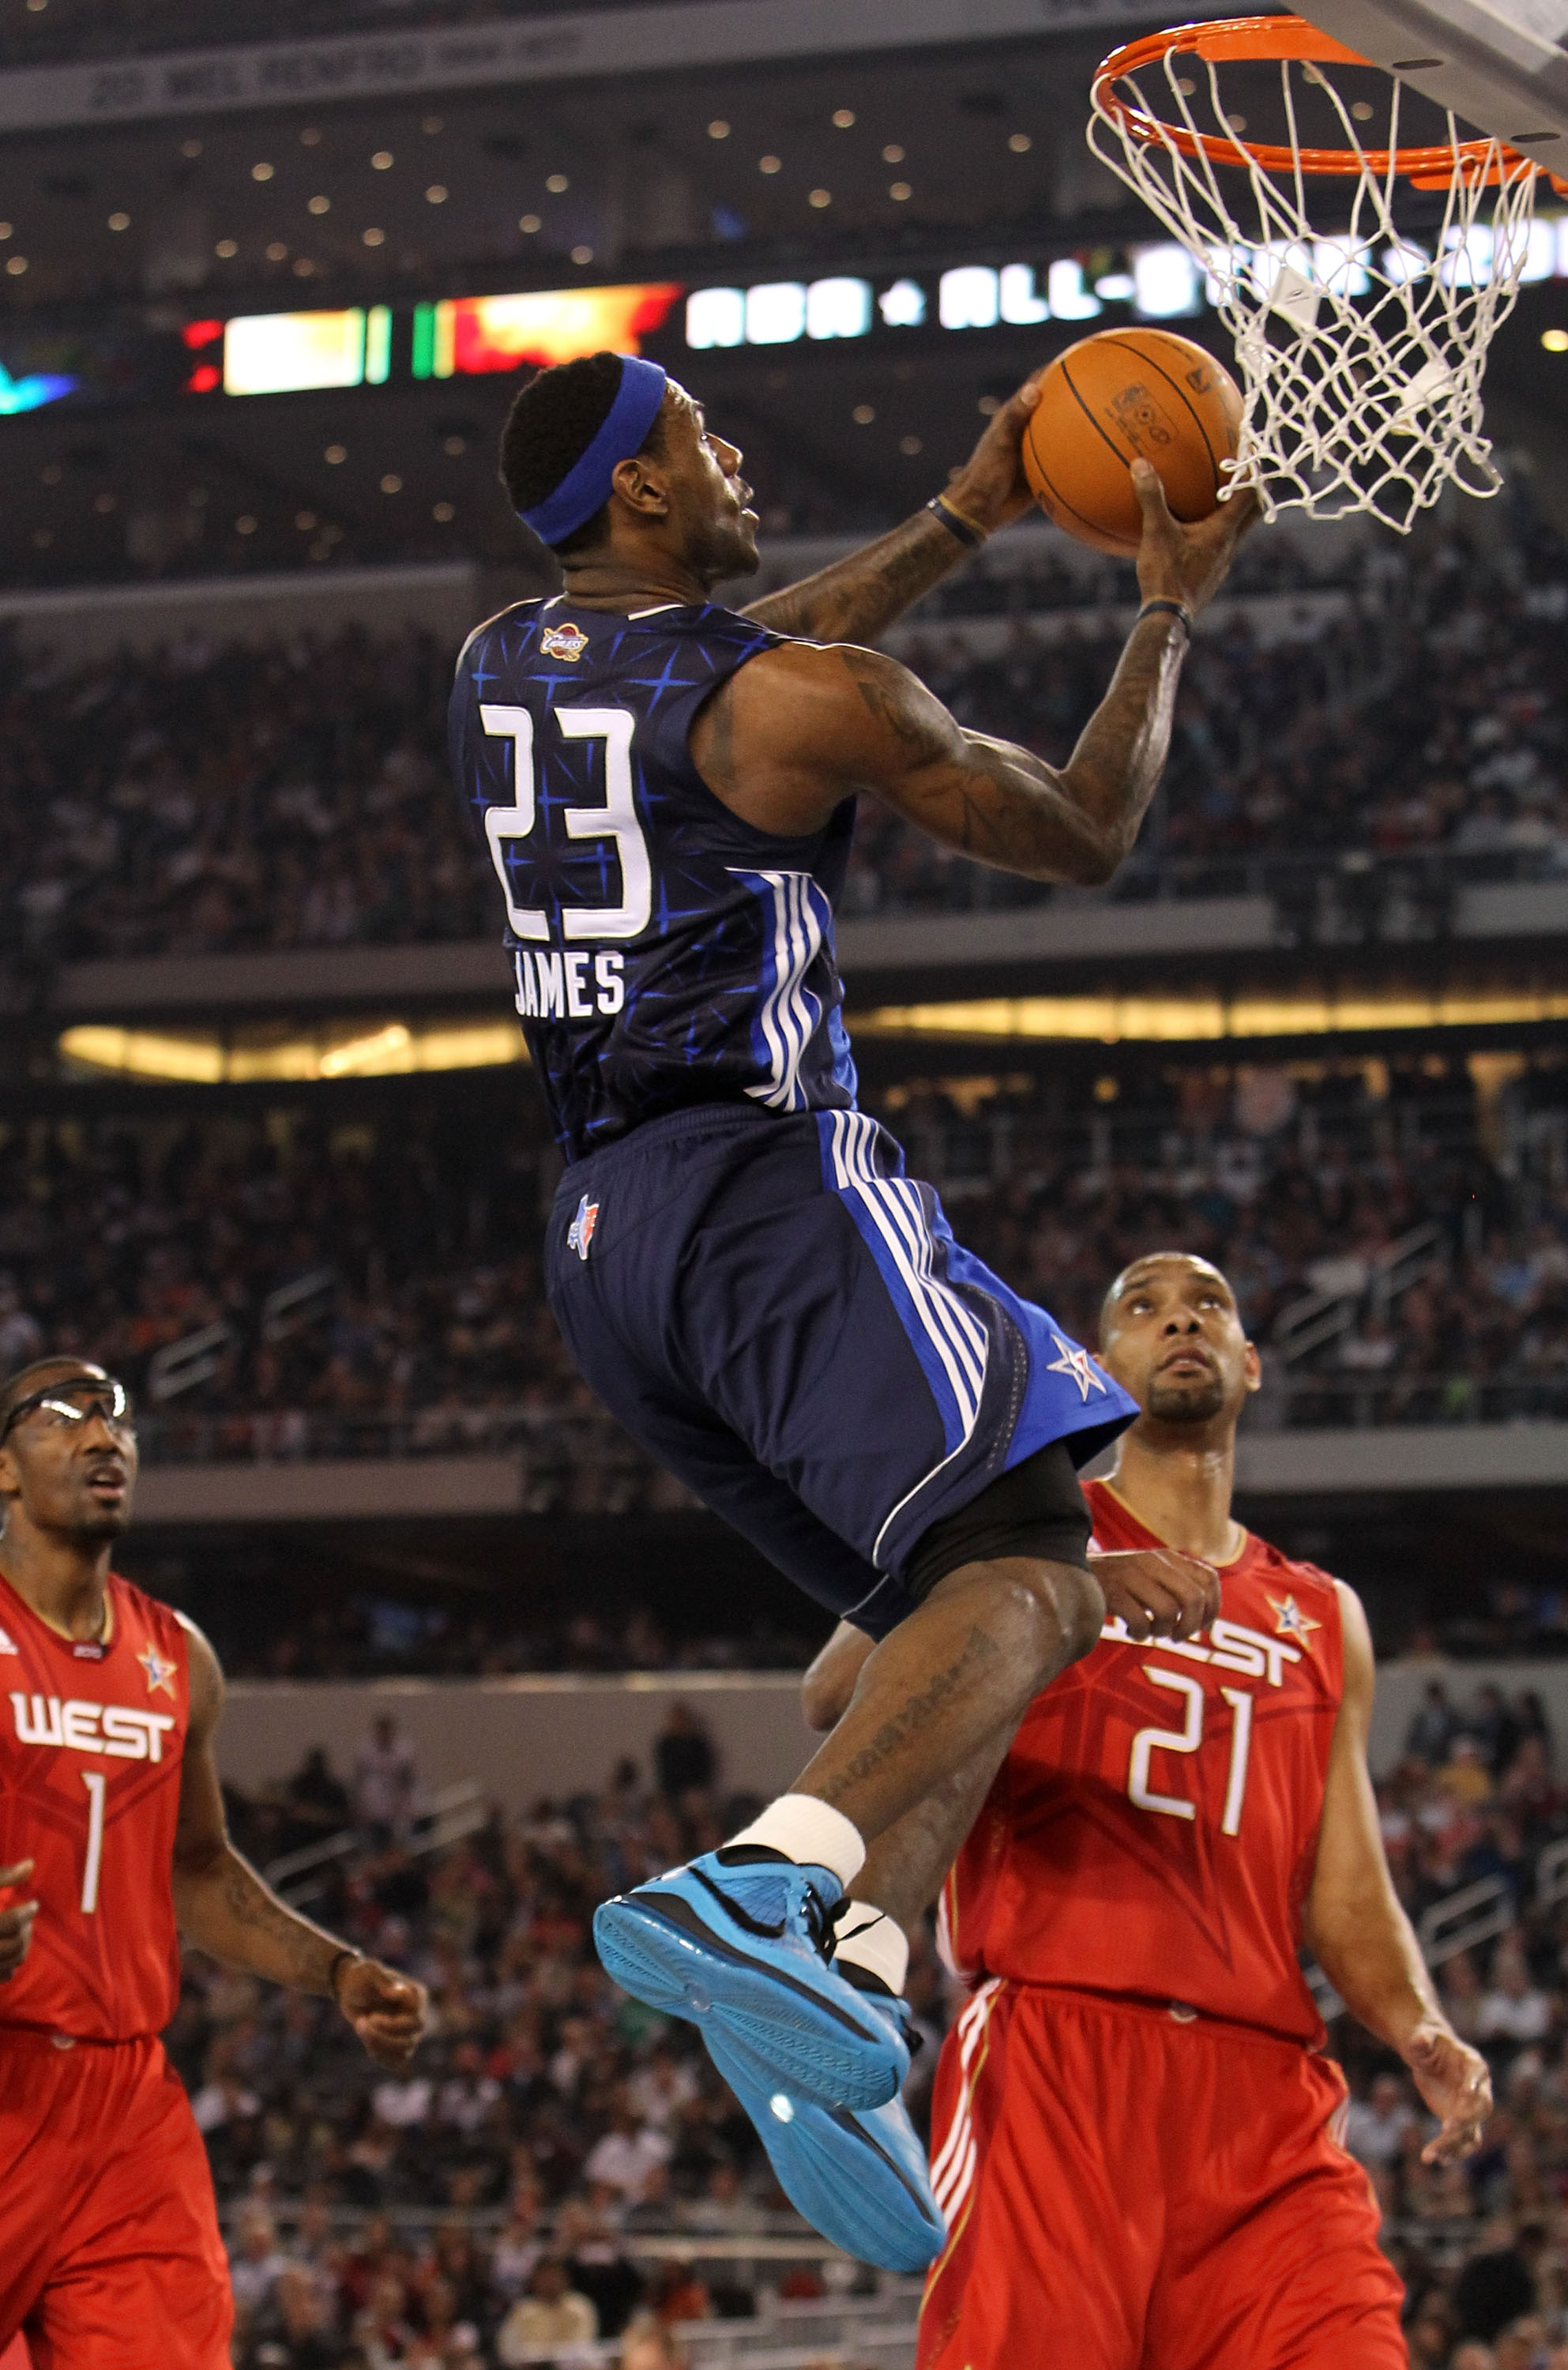 ARLINGTON, TX - FEBRUARY 14:  LeBron James #23 of the Eastern Conference goes up for a shot against Tim Duncan #21 of the Western Conference during the third quarter of the NBA All-Star Game, part of 2010 NBA All-Star Weekend at Cowboys Stadium on Februar